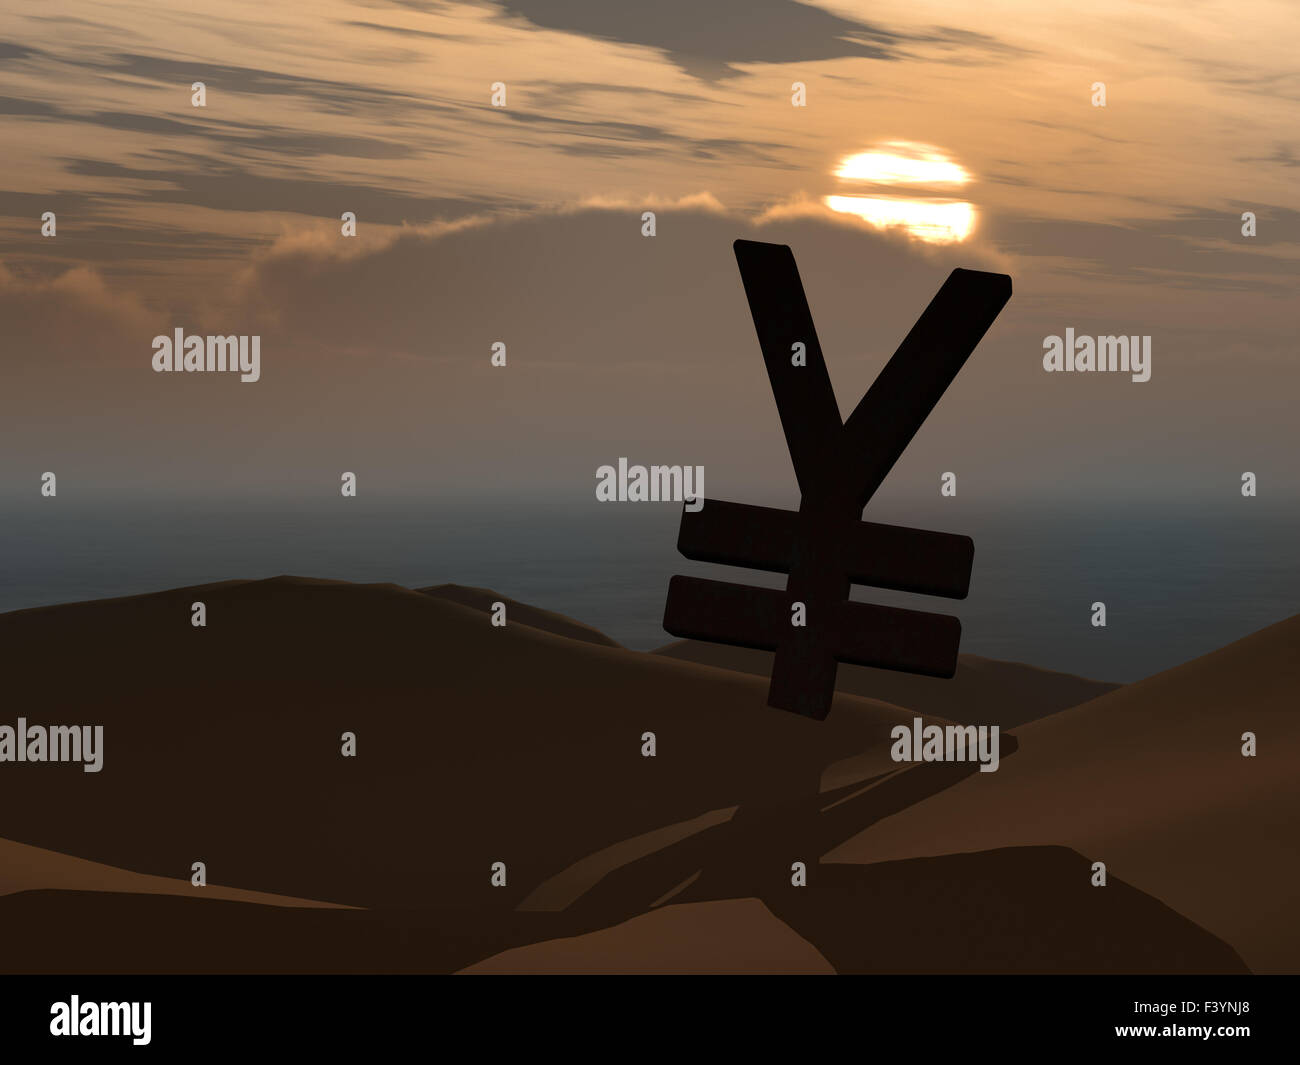 Yen currency symbol and sunset - Stock Image